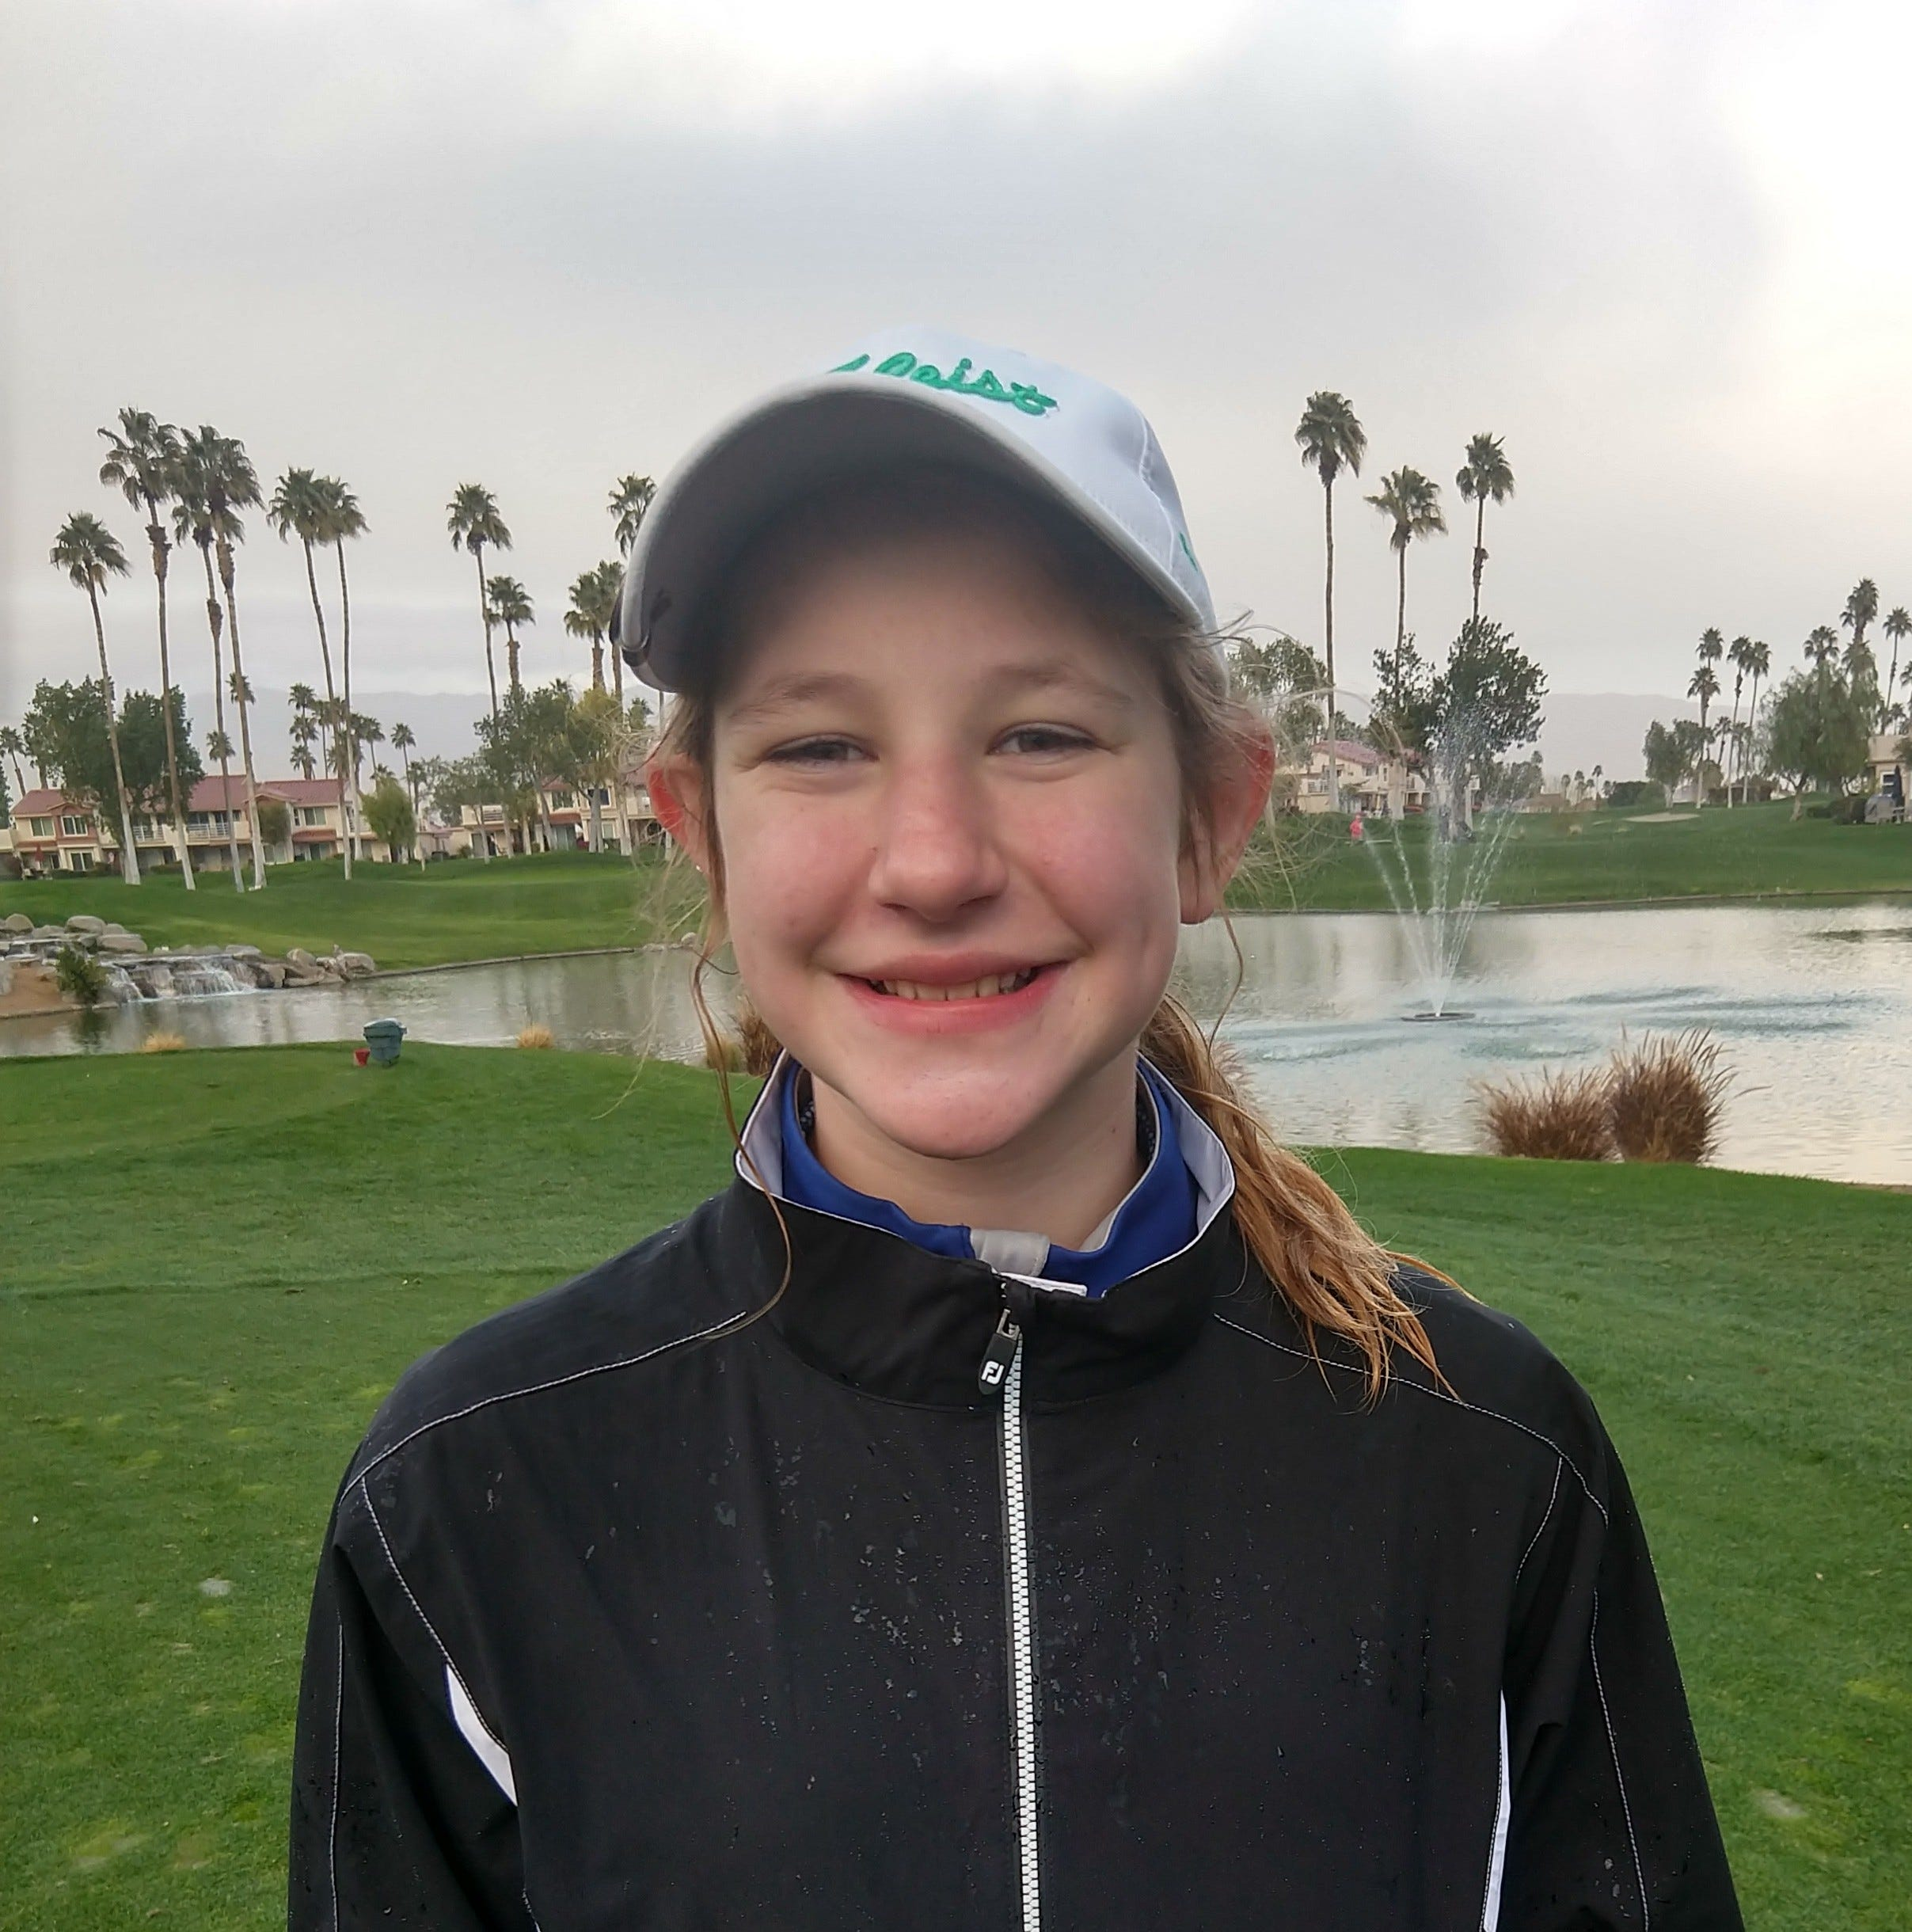 Athlete of the week: Paynesville 7th-grade golfer earns honor